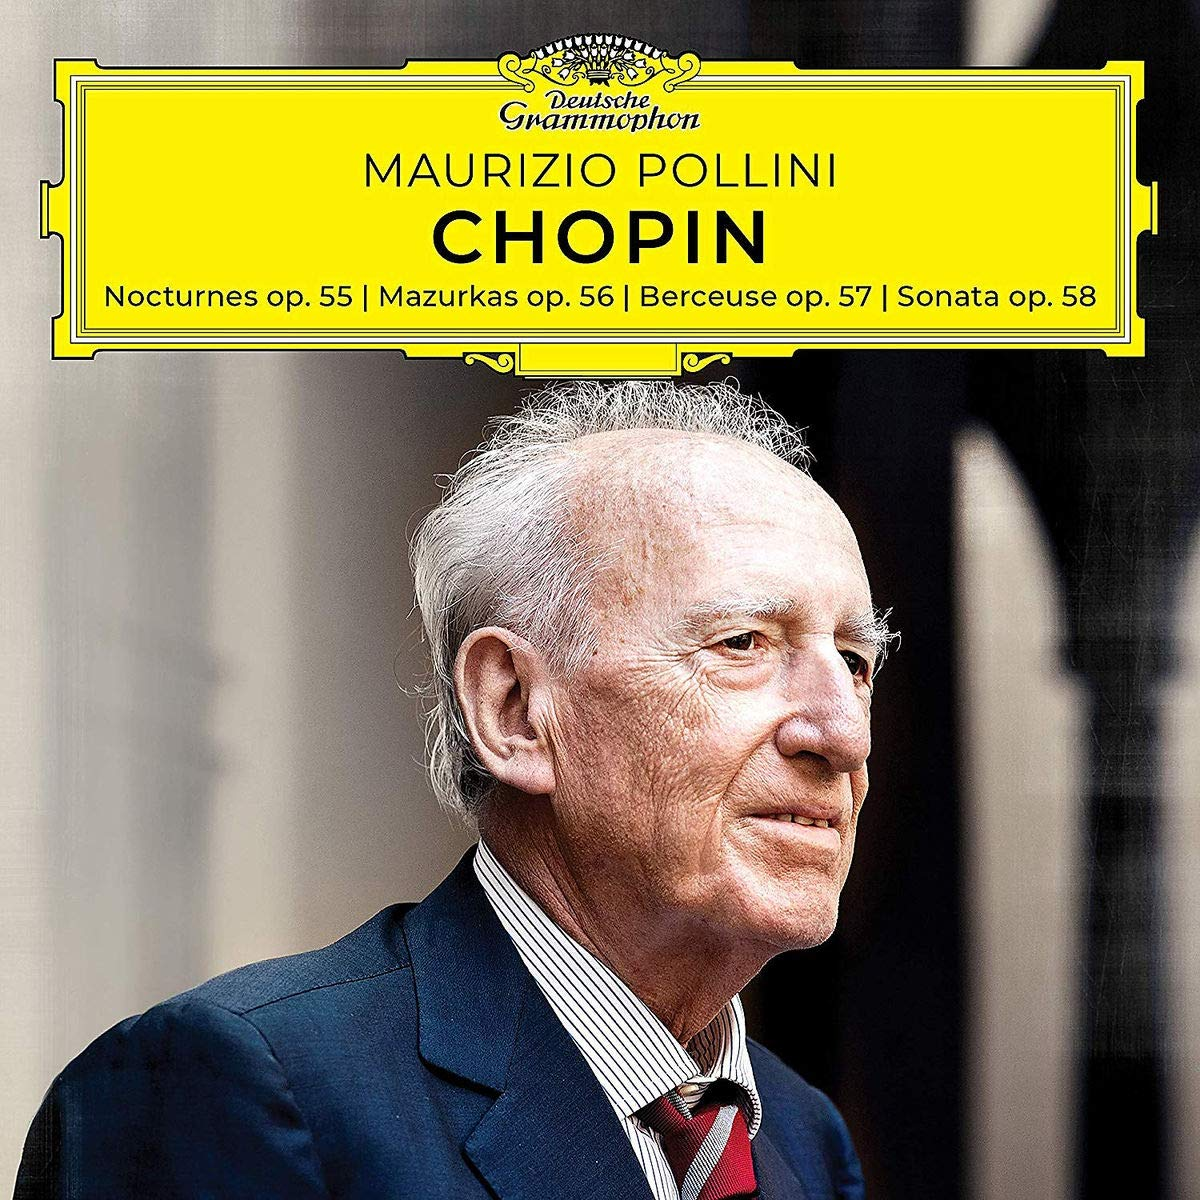 CD : Maurizio Pollini - Chopin: Nocturnes /  Mazurkas /  Berceuse /  Sonata (Digipack Packaging)